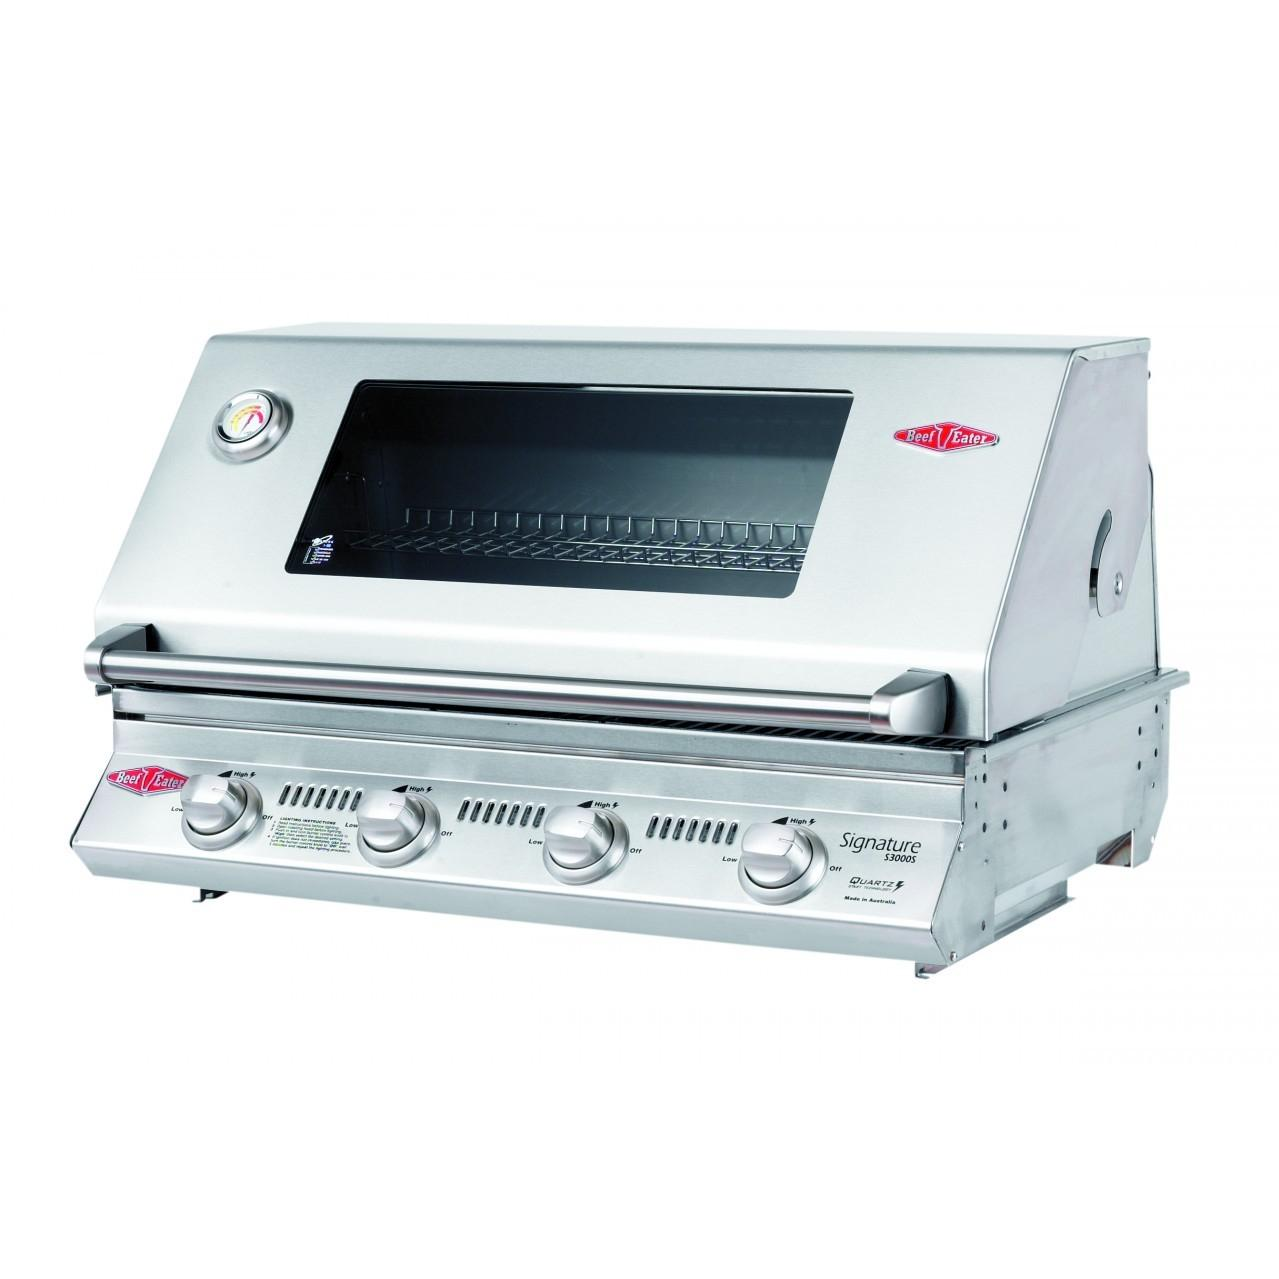 Beefeater Signature Premium 4 Burner Built-in Propane Gas Grill